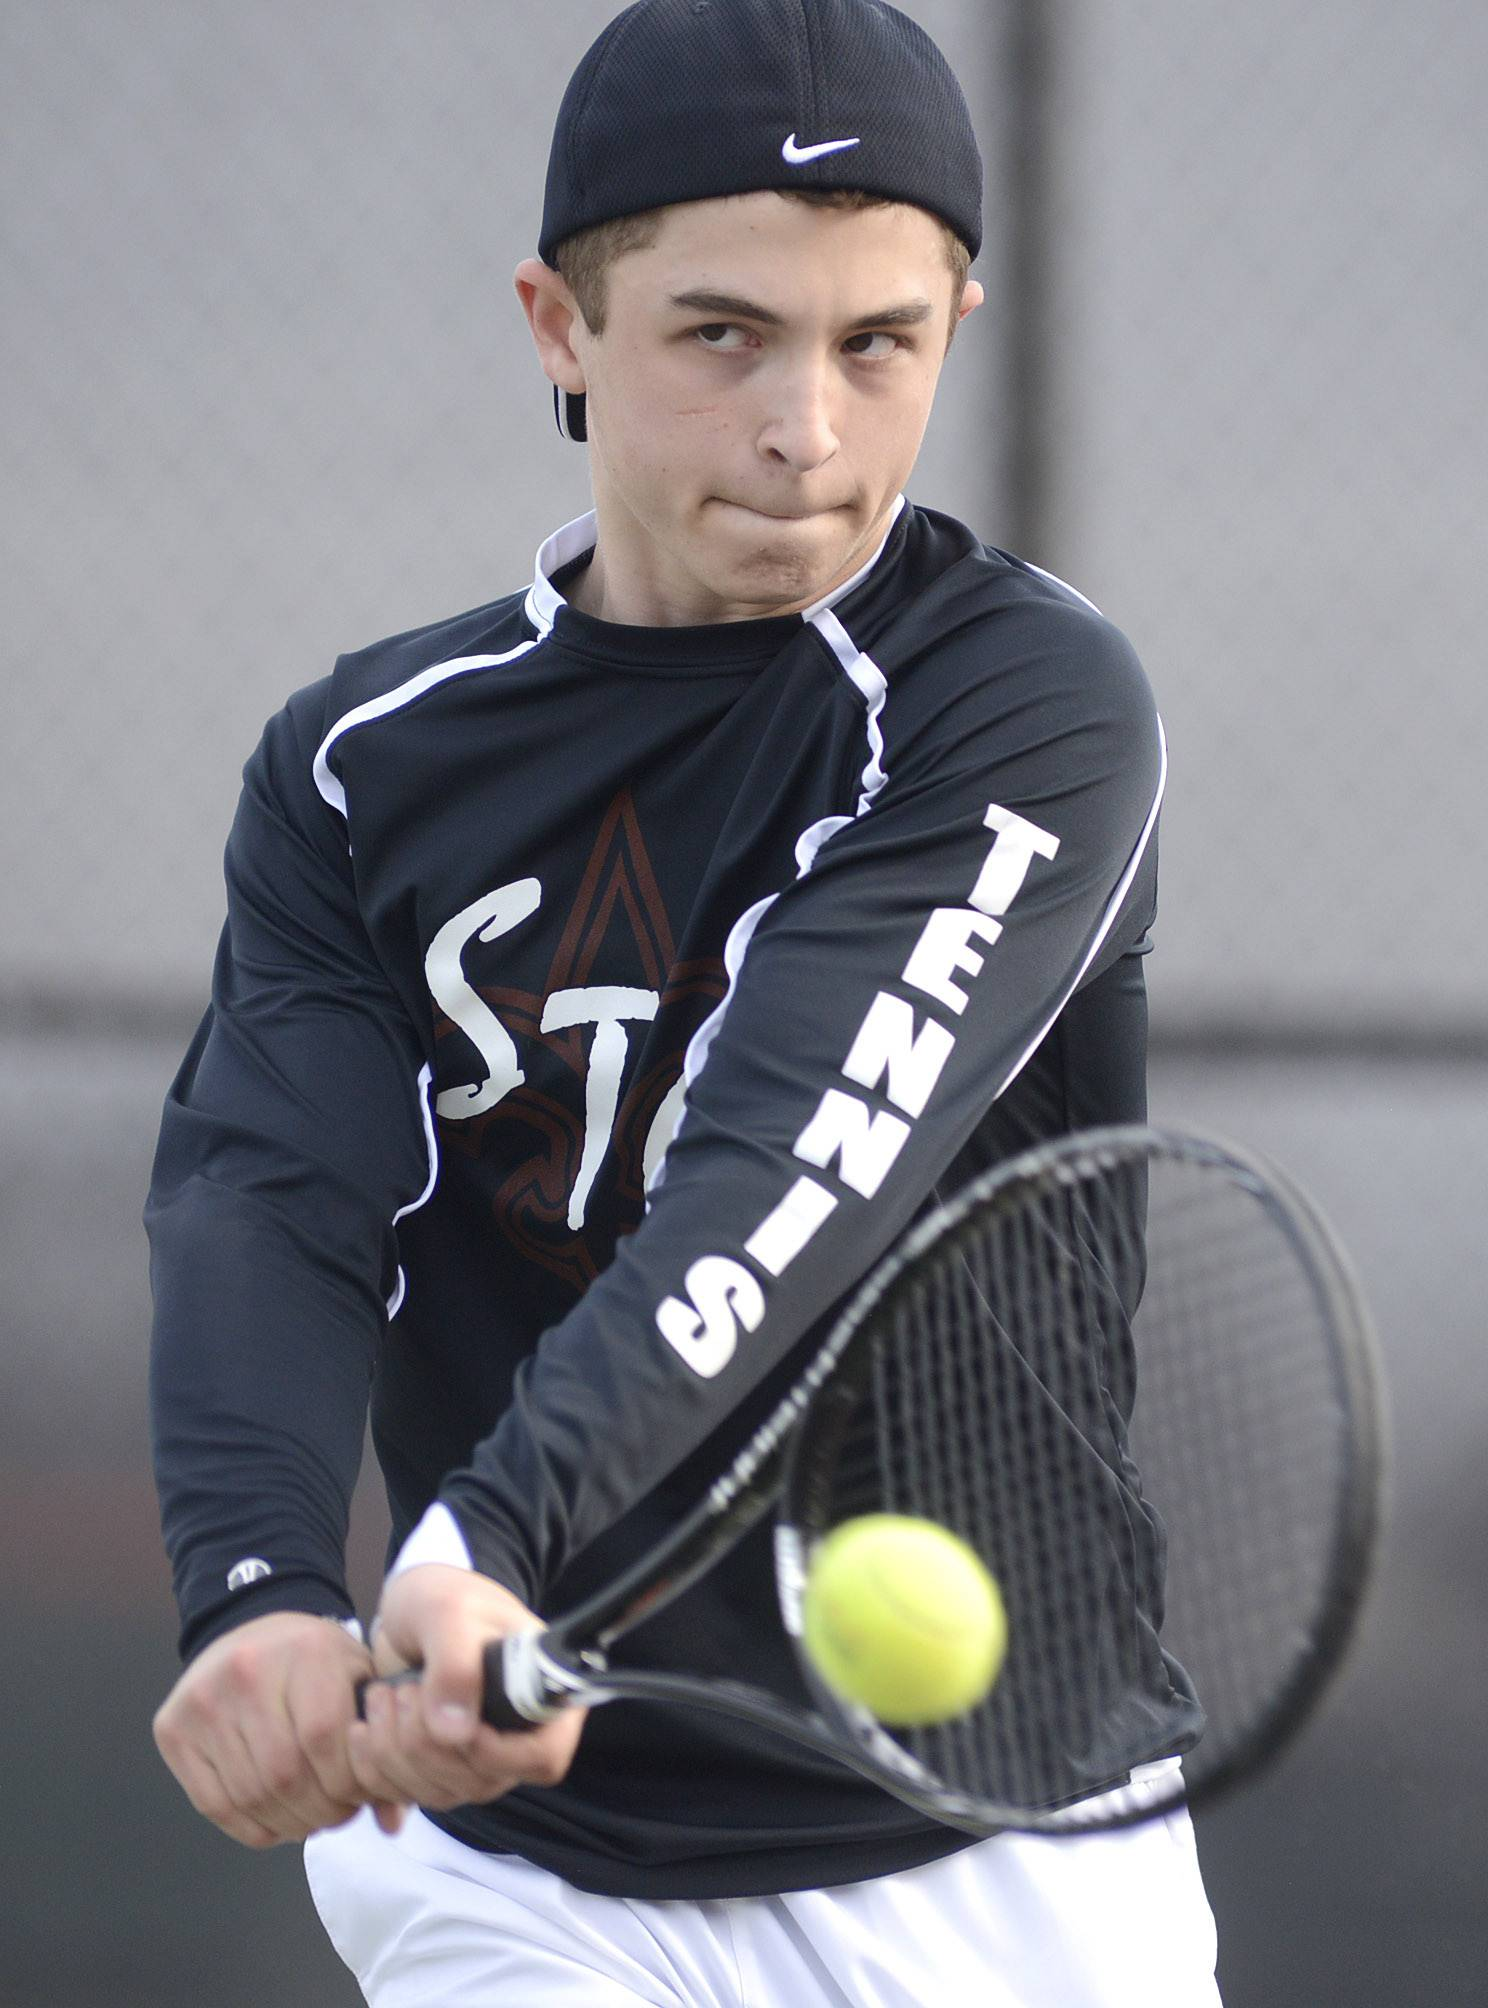 St. Charles East's Alex Winters returns a serve from St. Charles North in the first doubles match on Thursday, April 17.